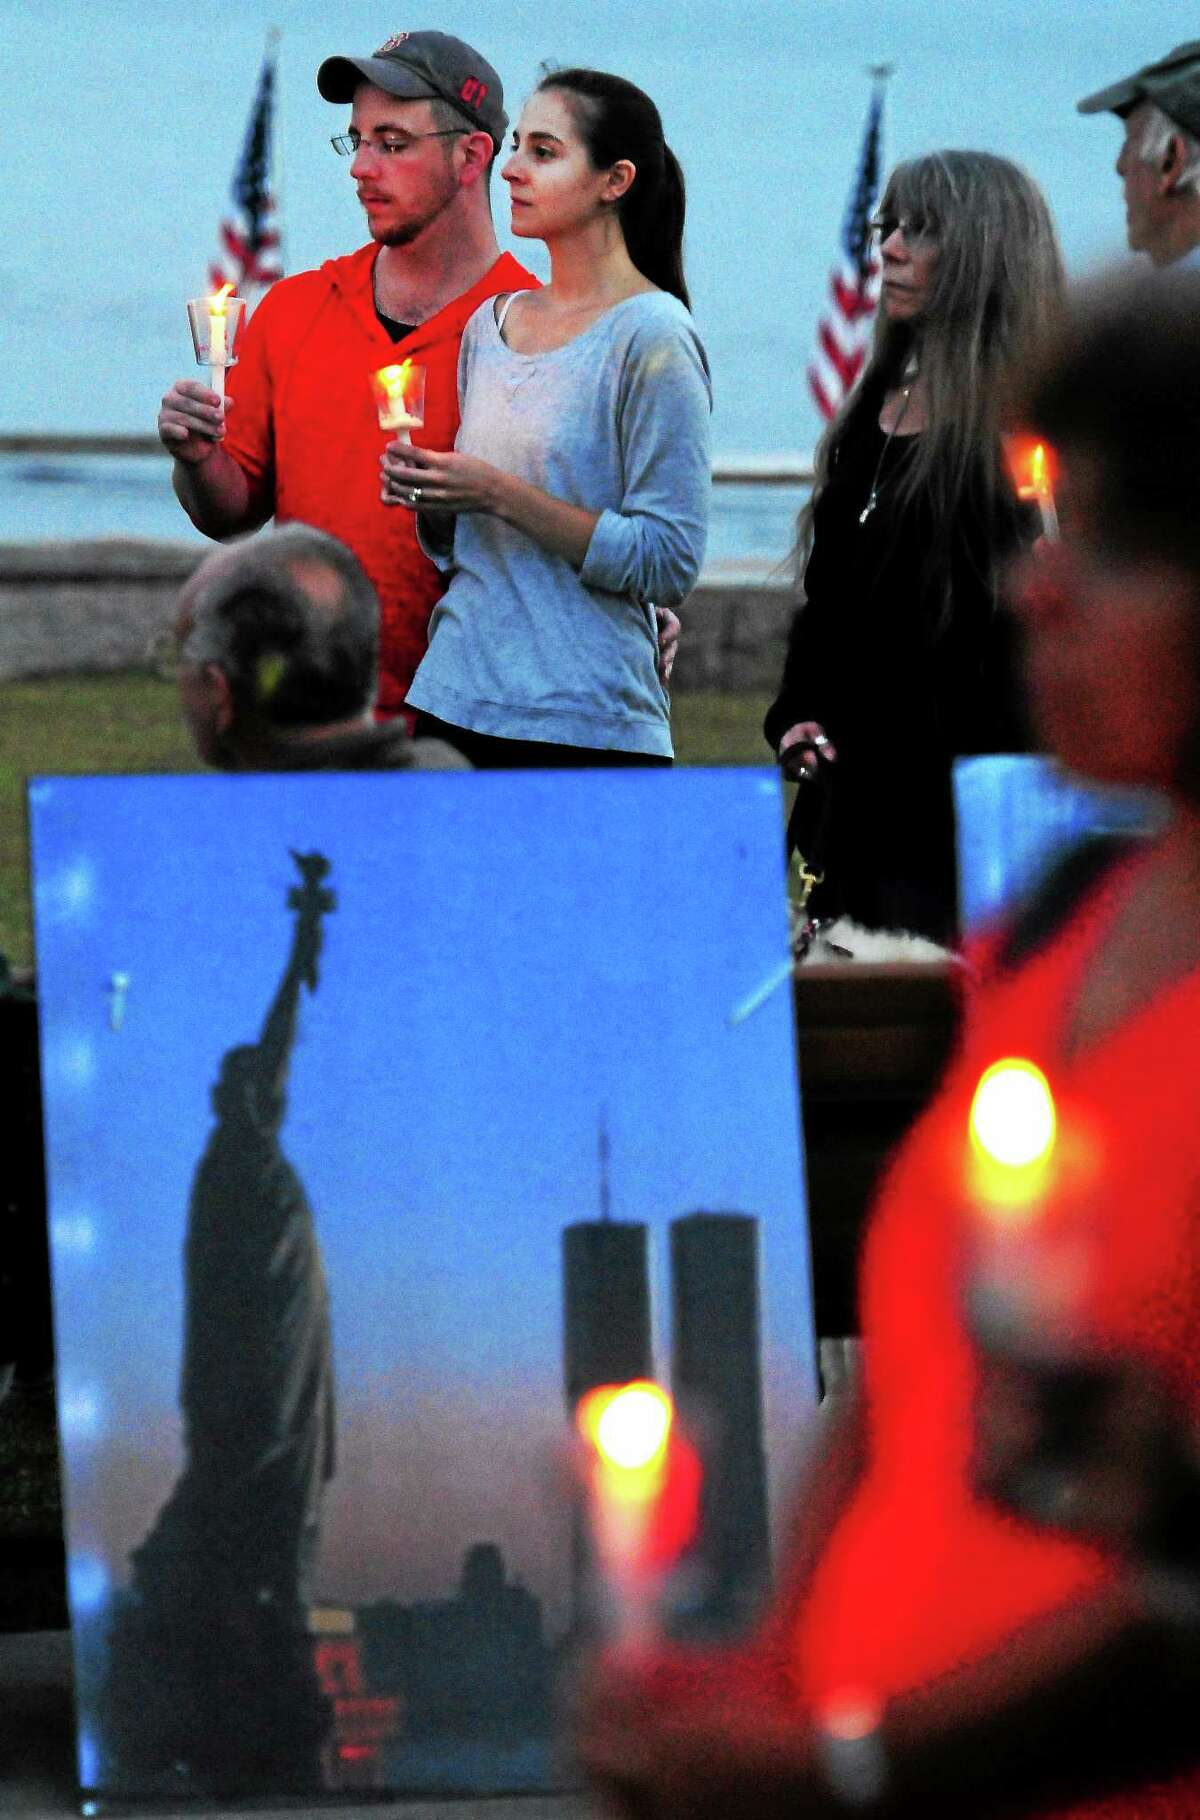 Pat Leigh, top left rear, with his wife, Amanda, center, and his mother, Linda Leigh, fourth from left, all of West Haven, during the City of West Haven's 13th anniversary of 9/11 Candlelight Vigil and Wreath Laying Ceremony in 2014 at the Richard S. Gabrielle Memorial.